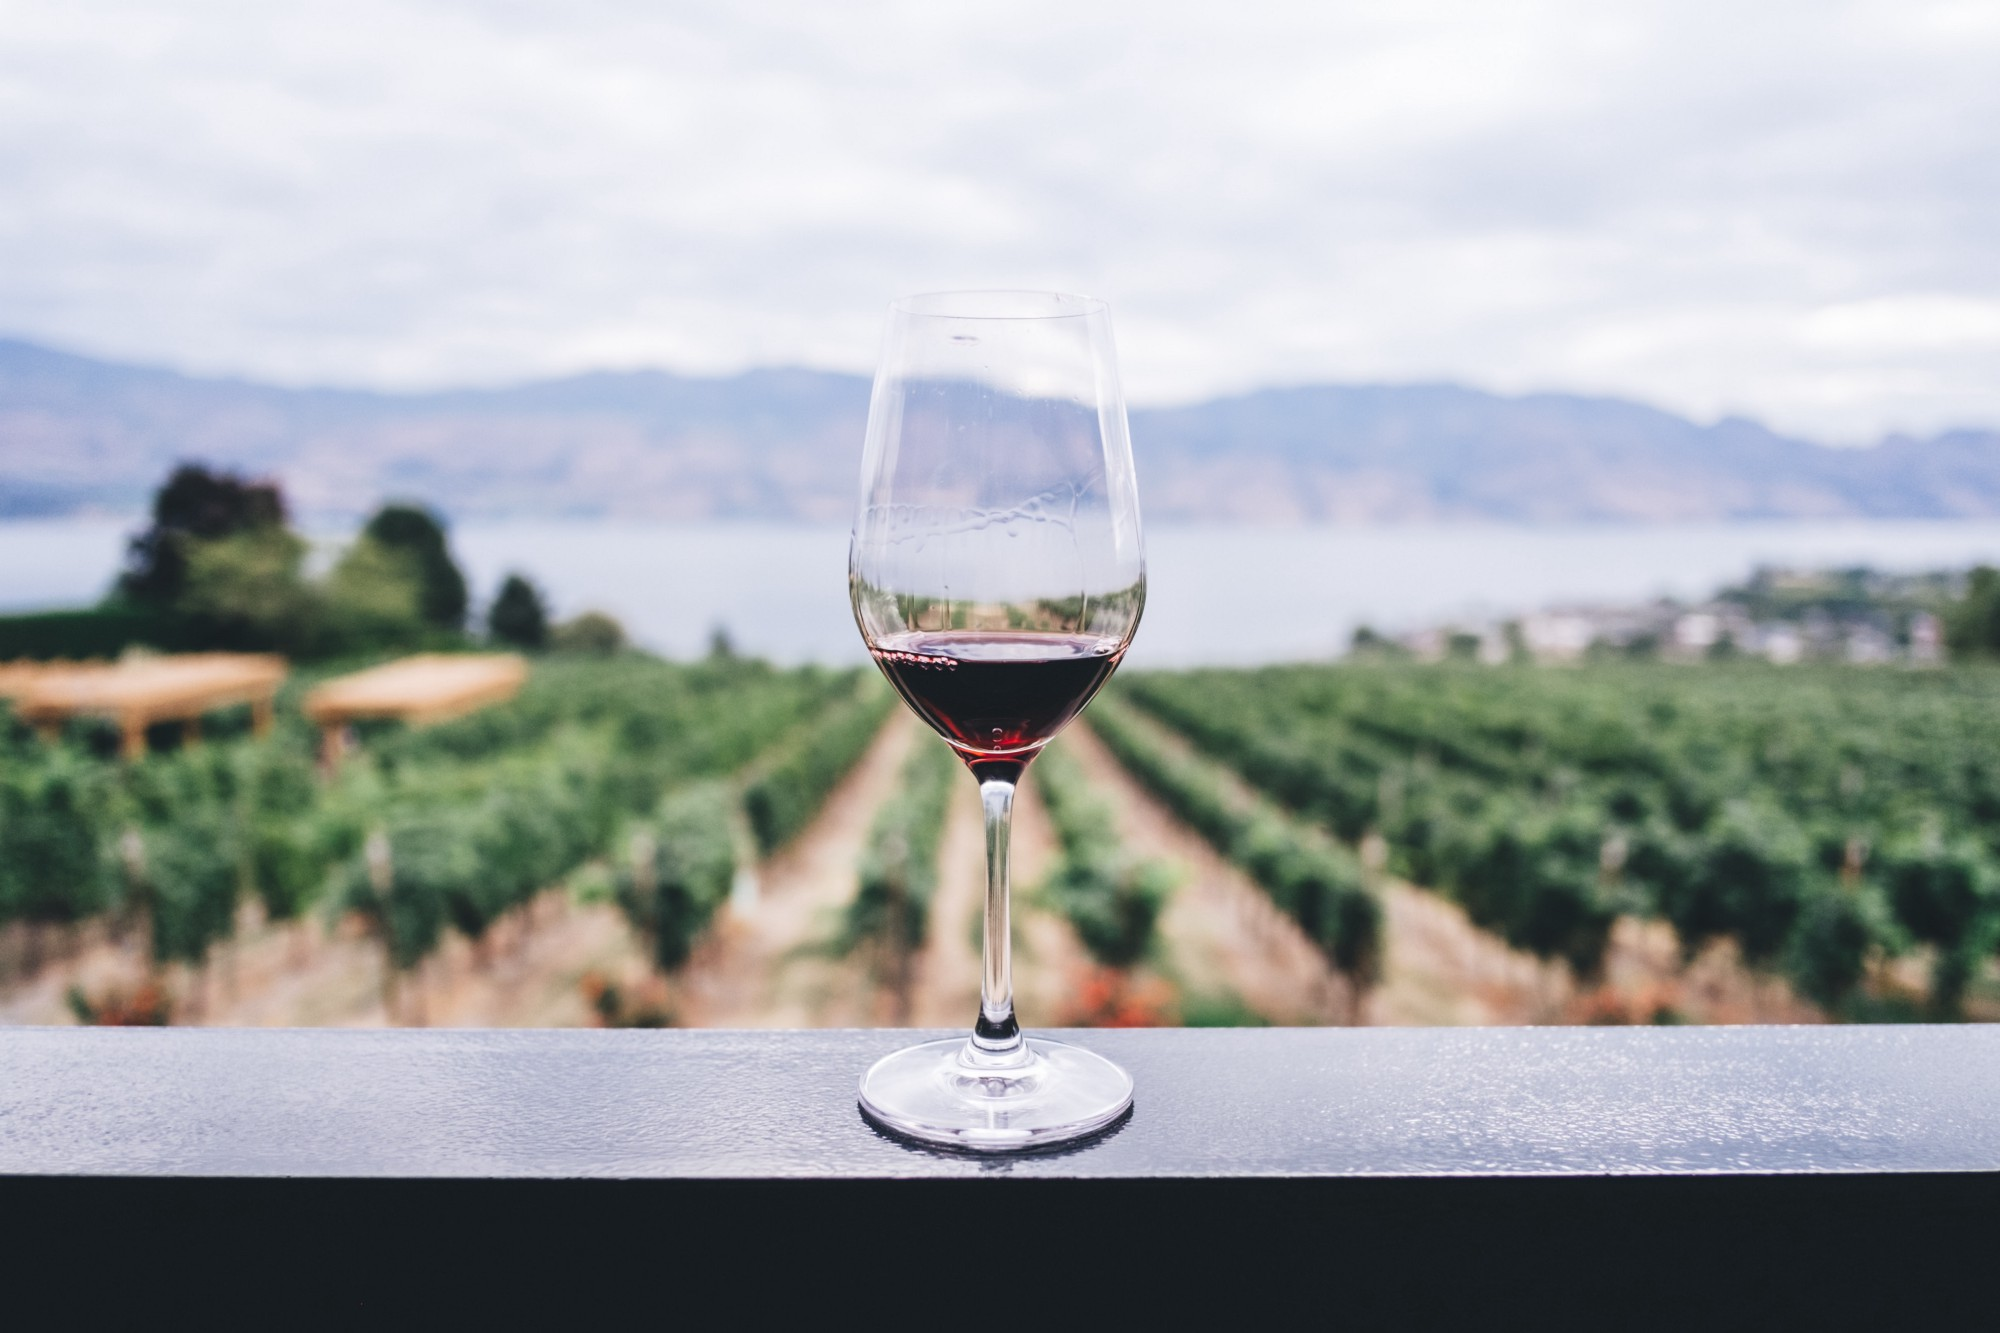 circumstances influence your experience of food and wine